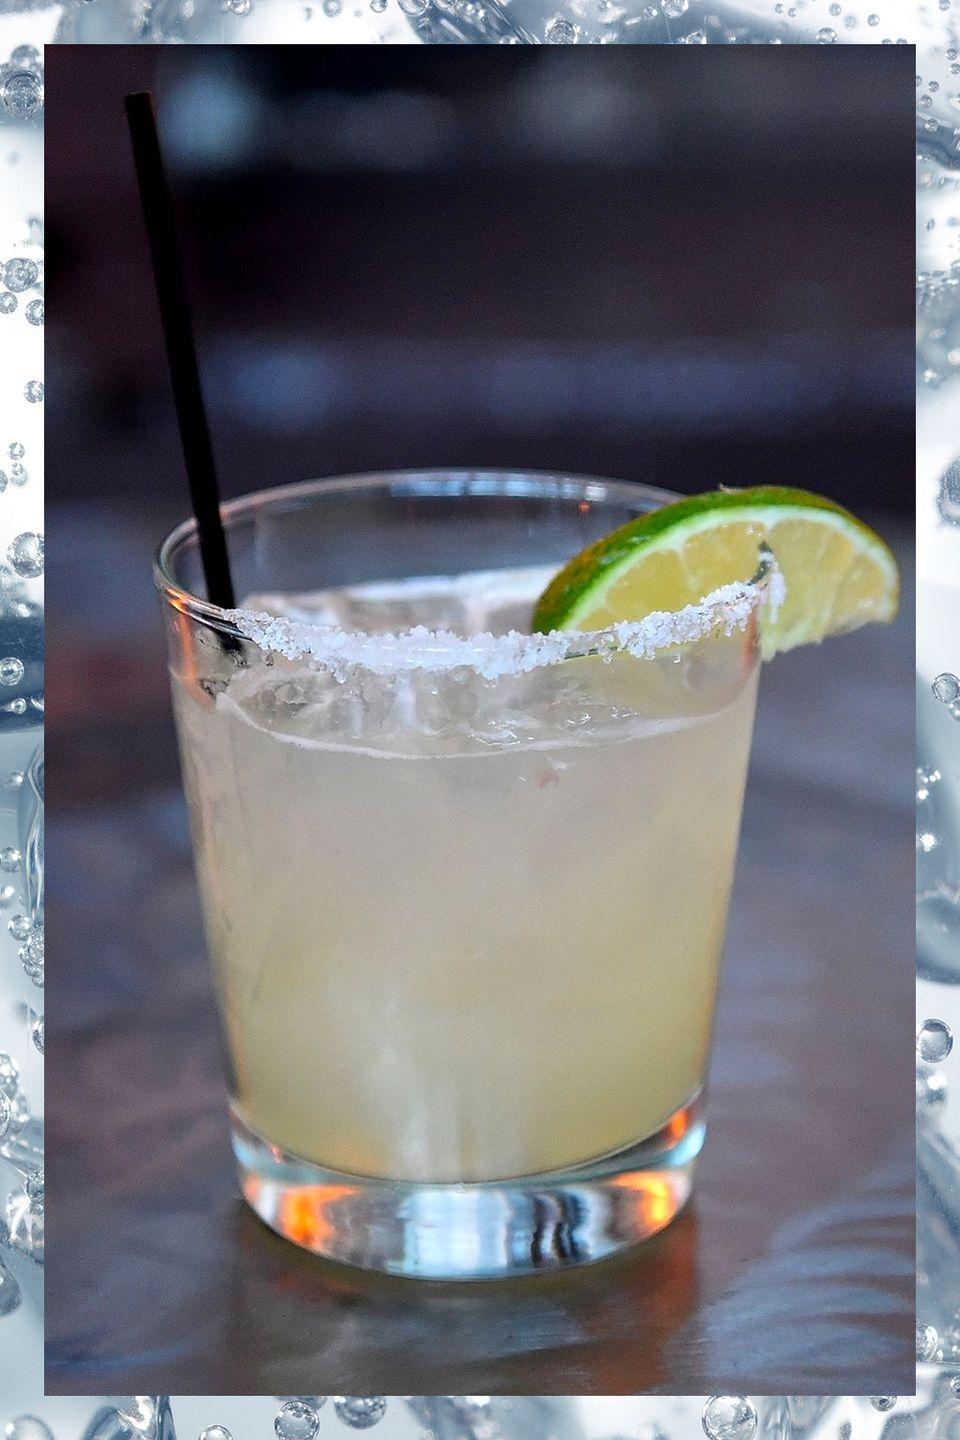 """<p>Cloyingly sweet margarita mixes have given this drink a bad name. A well-made version is a fresh mix of lime juice and tequila, with a hint of sweetener:</p><p>- 2 oz silver tequila<br>- 1 oz Cointreau <br>- 1 oz lime juice<br>- Salt for the rim</p><p><em>Since this recipe includes fresh juice, it should be shaken. Serve over ice in a glass with a salted rim.</em></p><p><strong>More:</strong> <a href=""""https://www.townandcountrymag.com/leisure/drinks/g3314/tequila-drinks/"""" rel=""""nofollow noopener"""" target=""""_blank"""" data-ylk=""""slk:Tequila Drinks You Should Know About"""" class=""""link rapid-noclick-resp"""">Tequila Drinks You Should Know About</a></p>"""